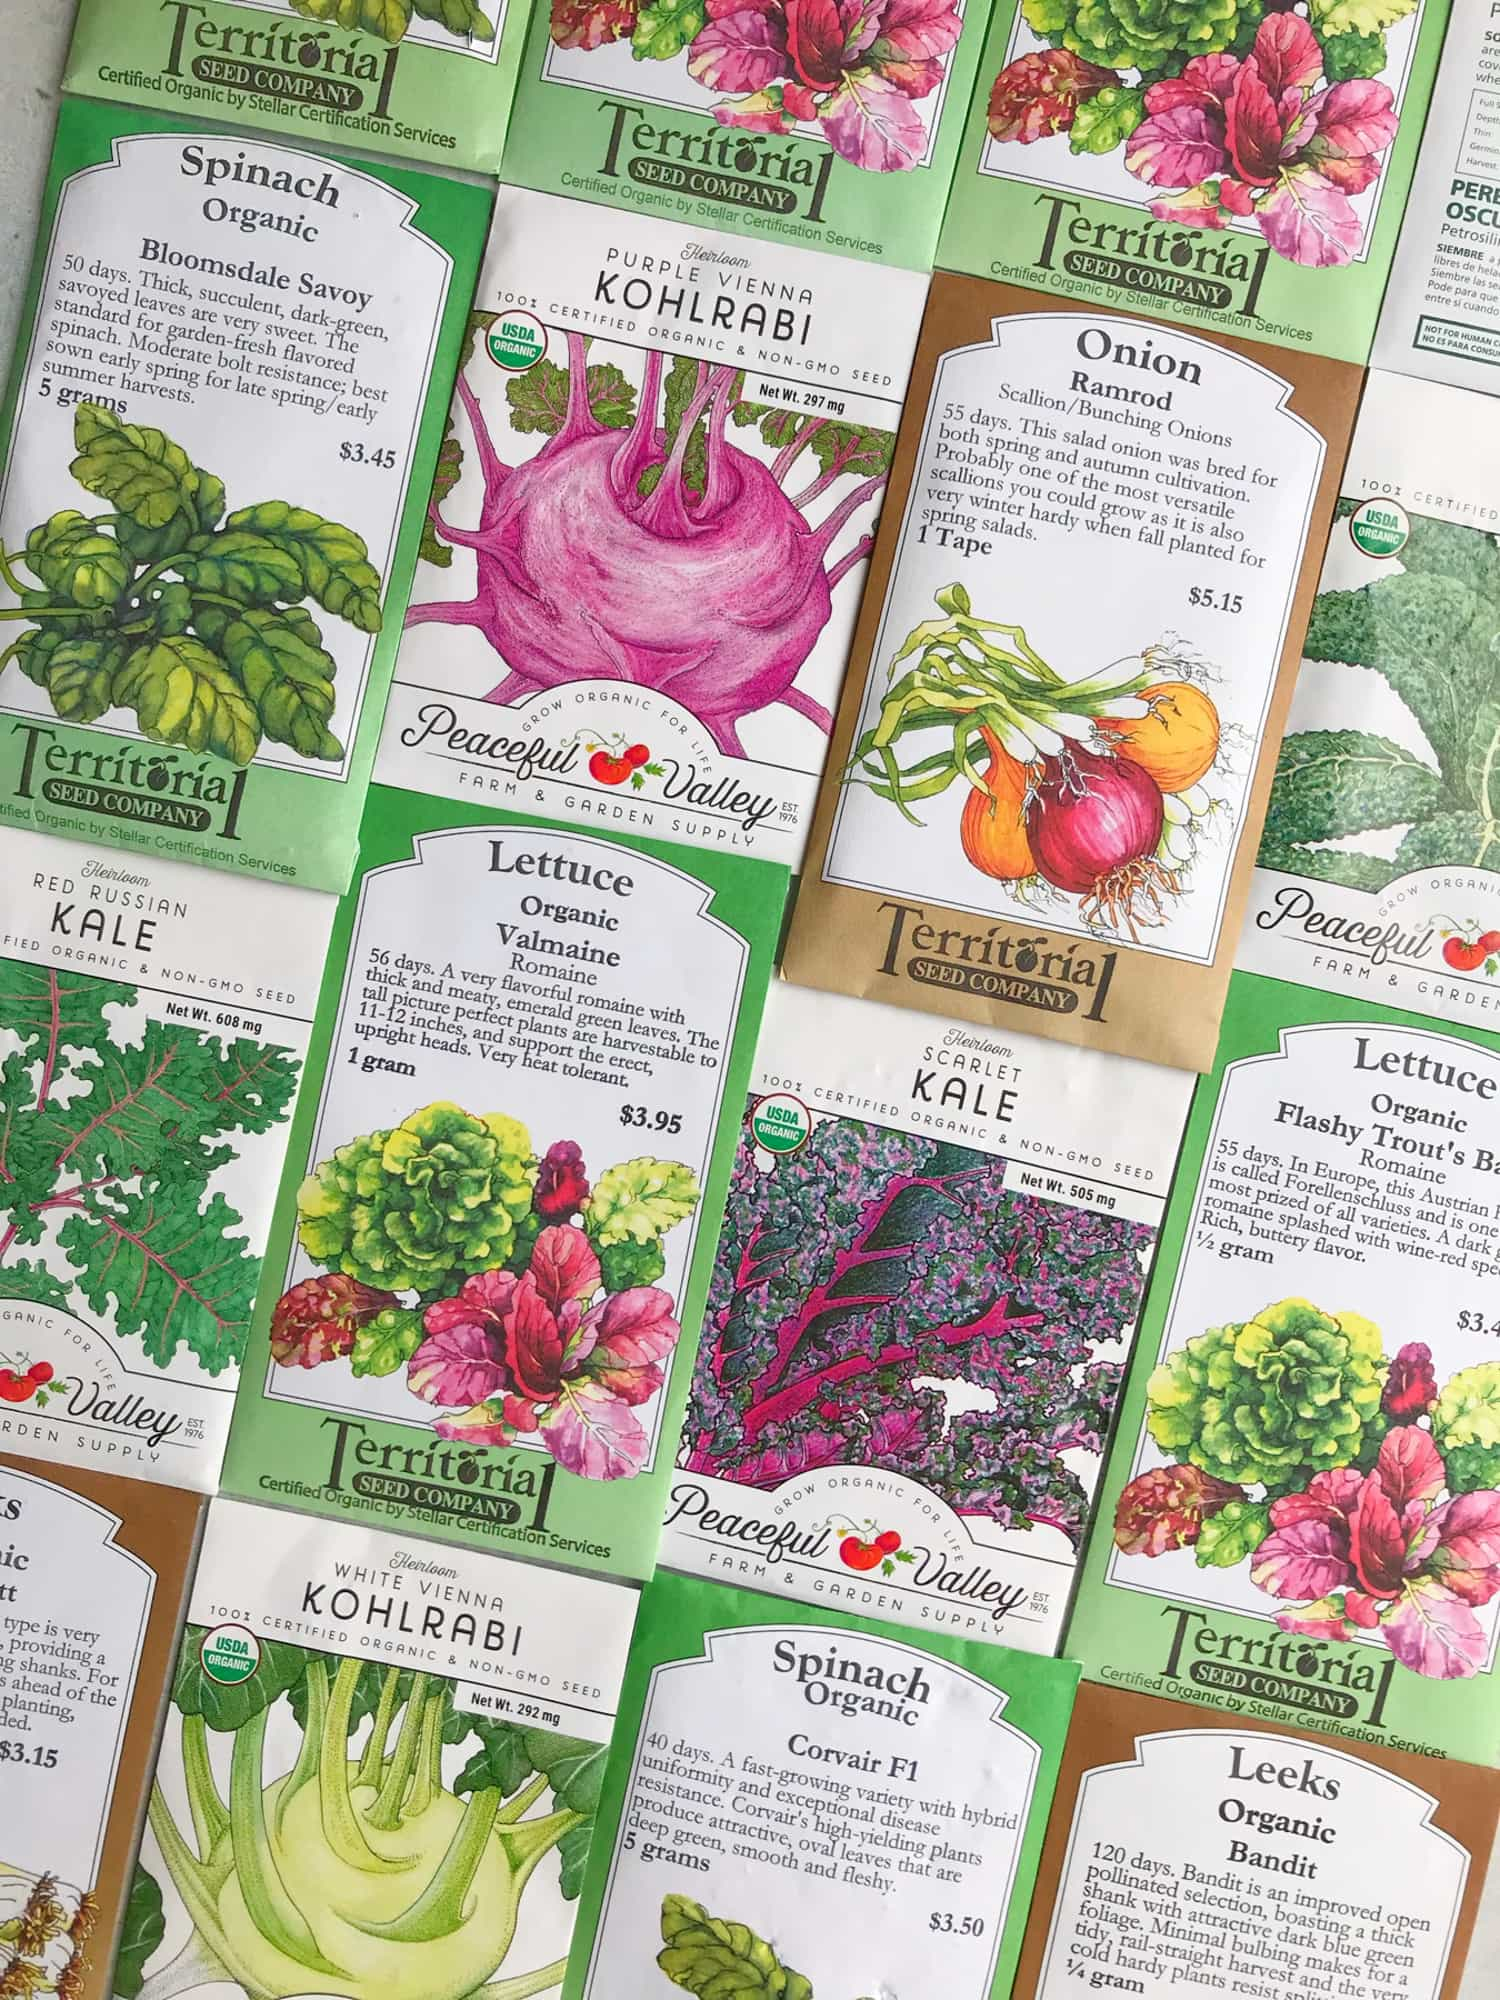 Grid of seed packets laid out for a guide to organic vegetable gardening for beginners